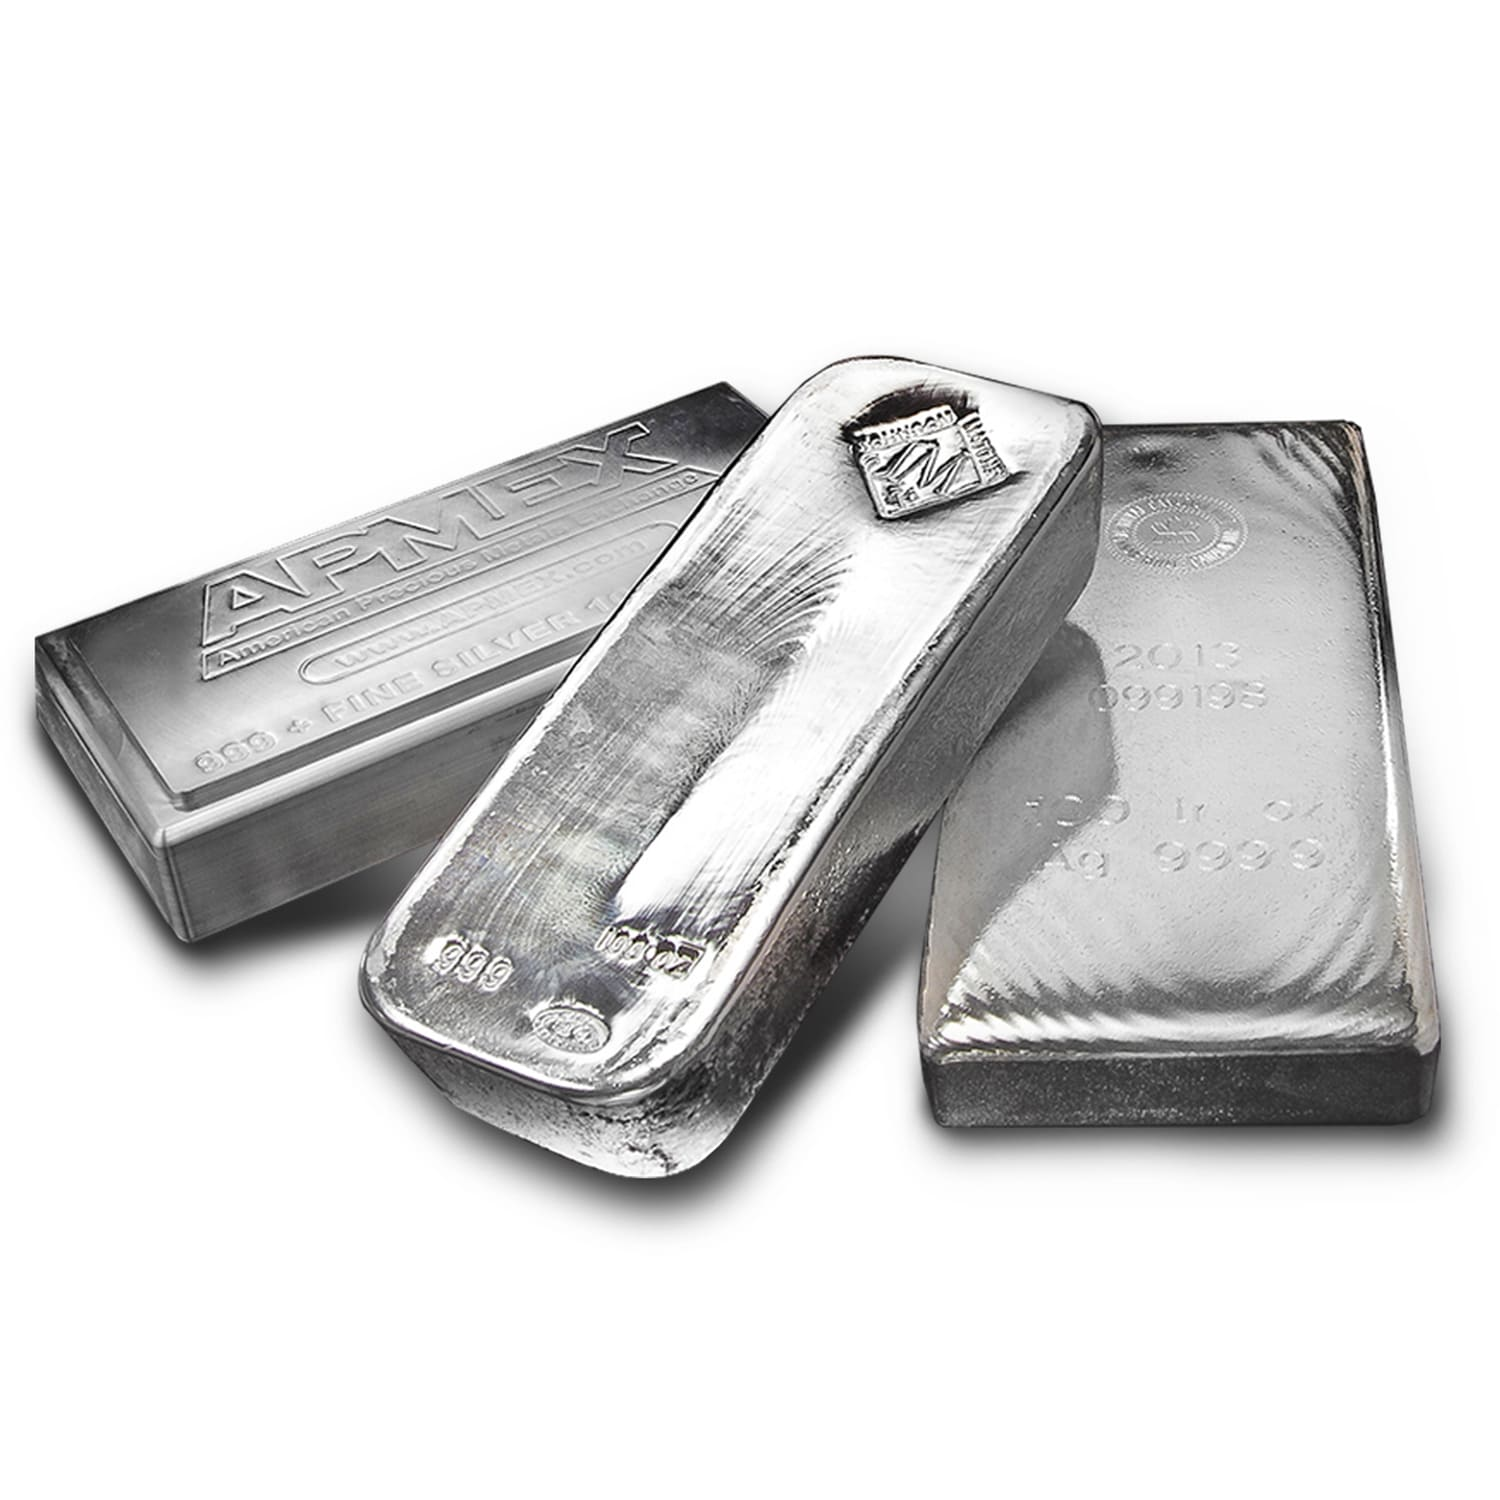 100.35 oz Silver Bars - Secondary Market